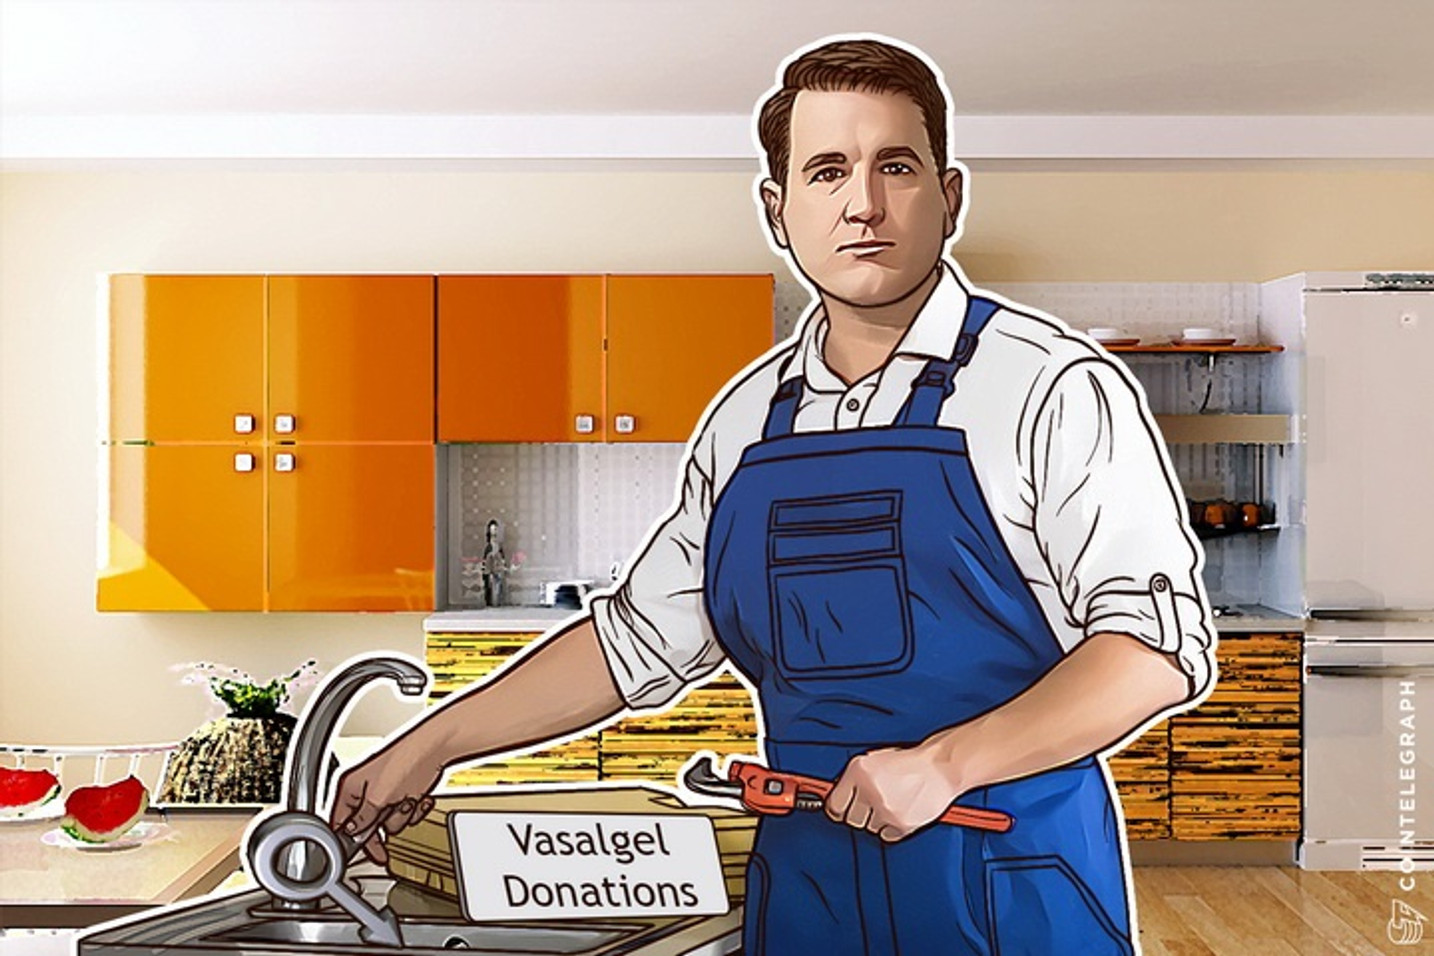 Male Contraceptive Project Loses $13,000 Bitcoin Donation Because of Payment Limit